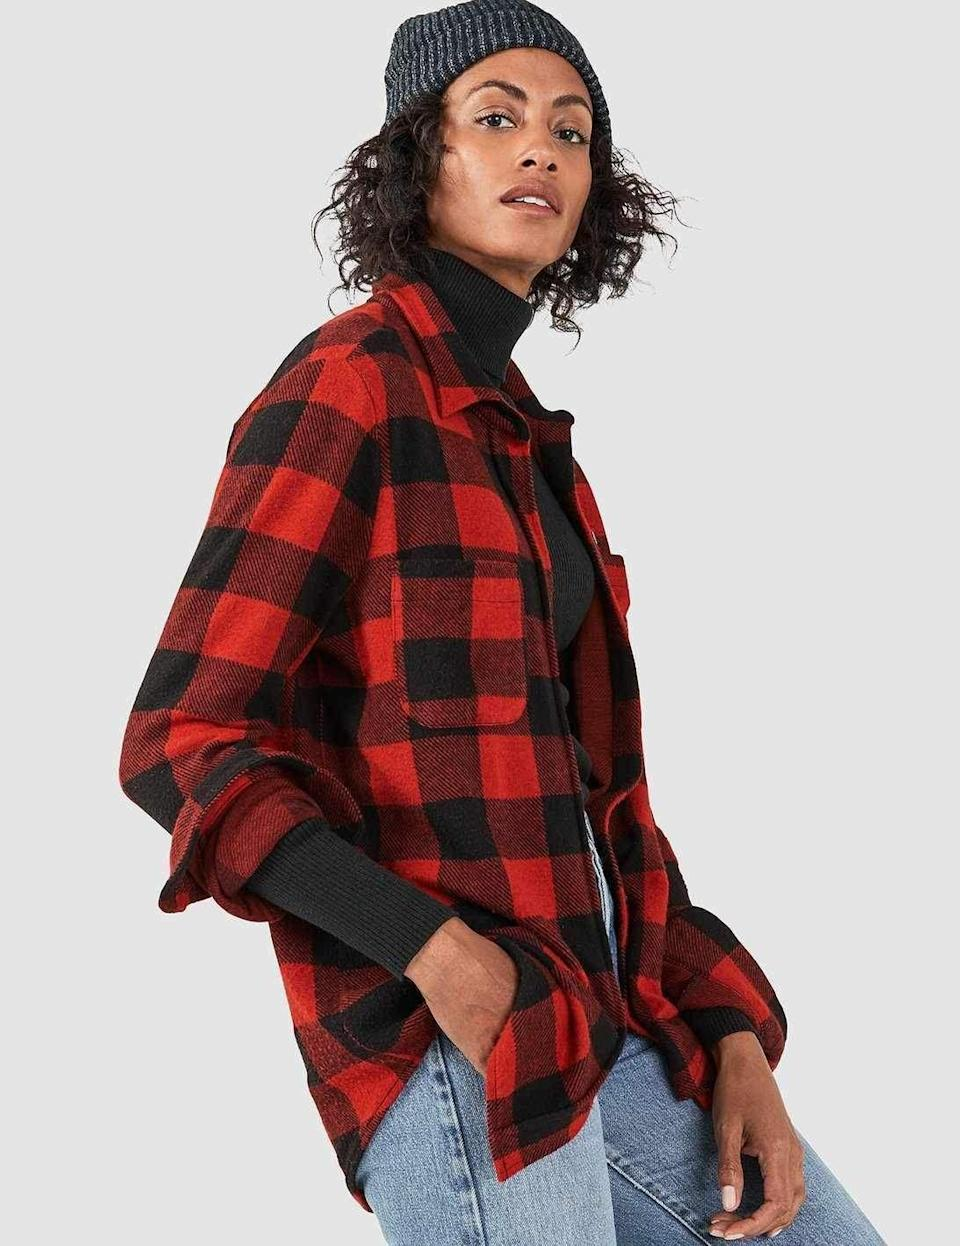 """<p><strong>Faherty</strong></p><p>fahertybrand.com</p><p><strong>$128.00</strong></p><p><a href=""""https://go.redirectingat.com?id=74968X1596630&url=https%3A%2F%2Ffahertybrand.com%2Fproducts%2Fknit-belmar-shirt-black-red-buffalo-check%3F_pos%3D32%26_sid%3D4b09f3948%26_ss%3Dr&sref=https%3A%2F%2Fwww.cosmopolitan.com%2Fstyle-beauty%2Ffashion%2Fg32678355%2Fflannel-outfits-how-to-wear%2F"""" rel=""""nofollow noopener"""" target=""""_blank"""" data-ylk=""""slk:Shop Now"""" class=""""link rapid-noclick-resp"""">Shop Now</a></p><p>The red-and-black buffalo check pattern is always a fall staple. Layer it with a turtleneck and add jeans and a beanie, and you'll look ready to jump into a pile of crunchy leaves. </p>"""